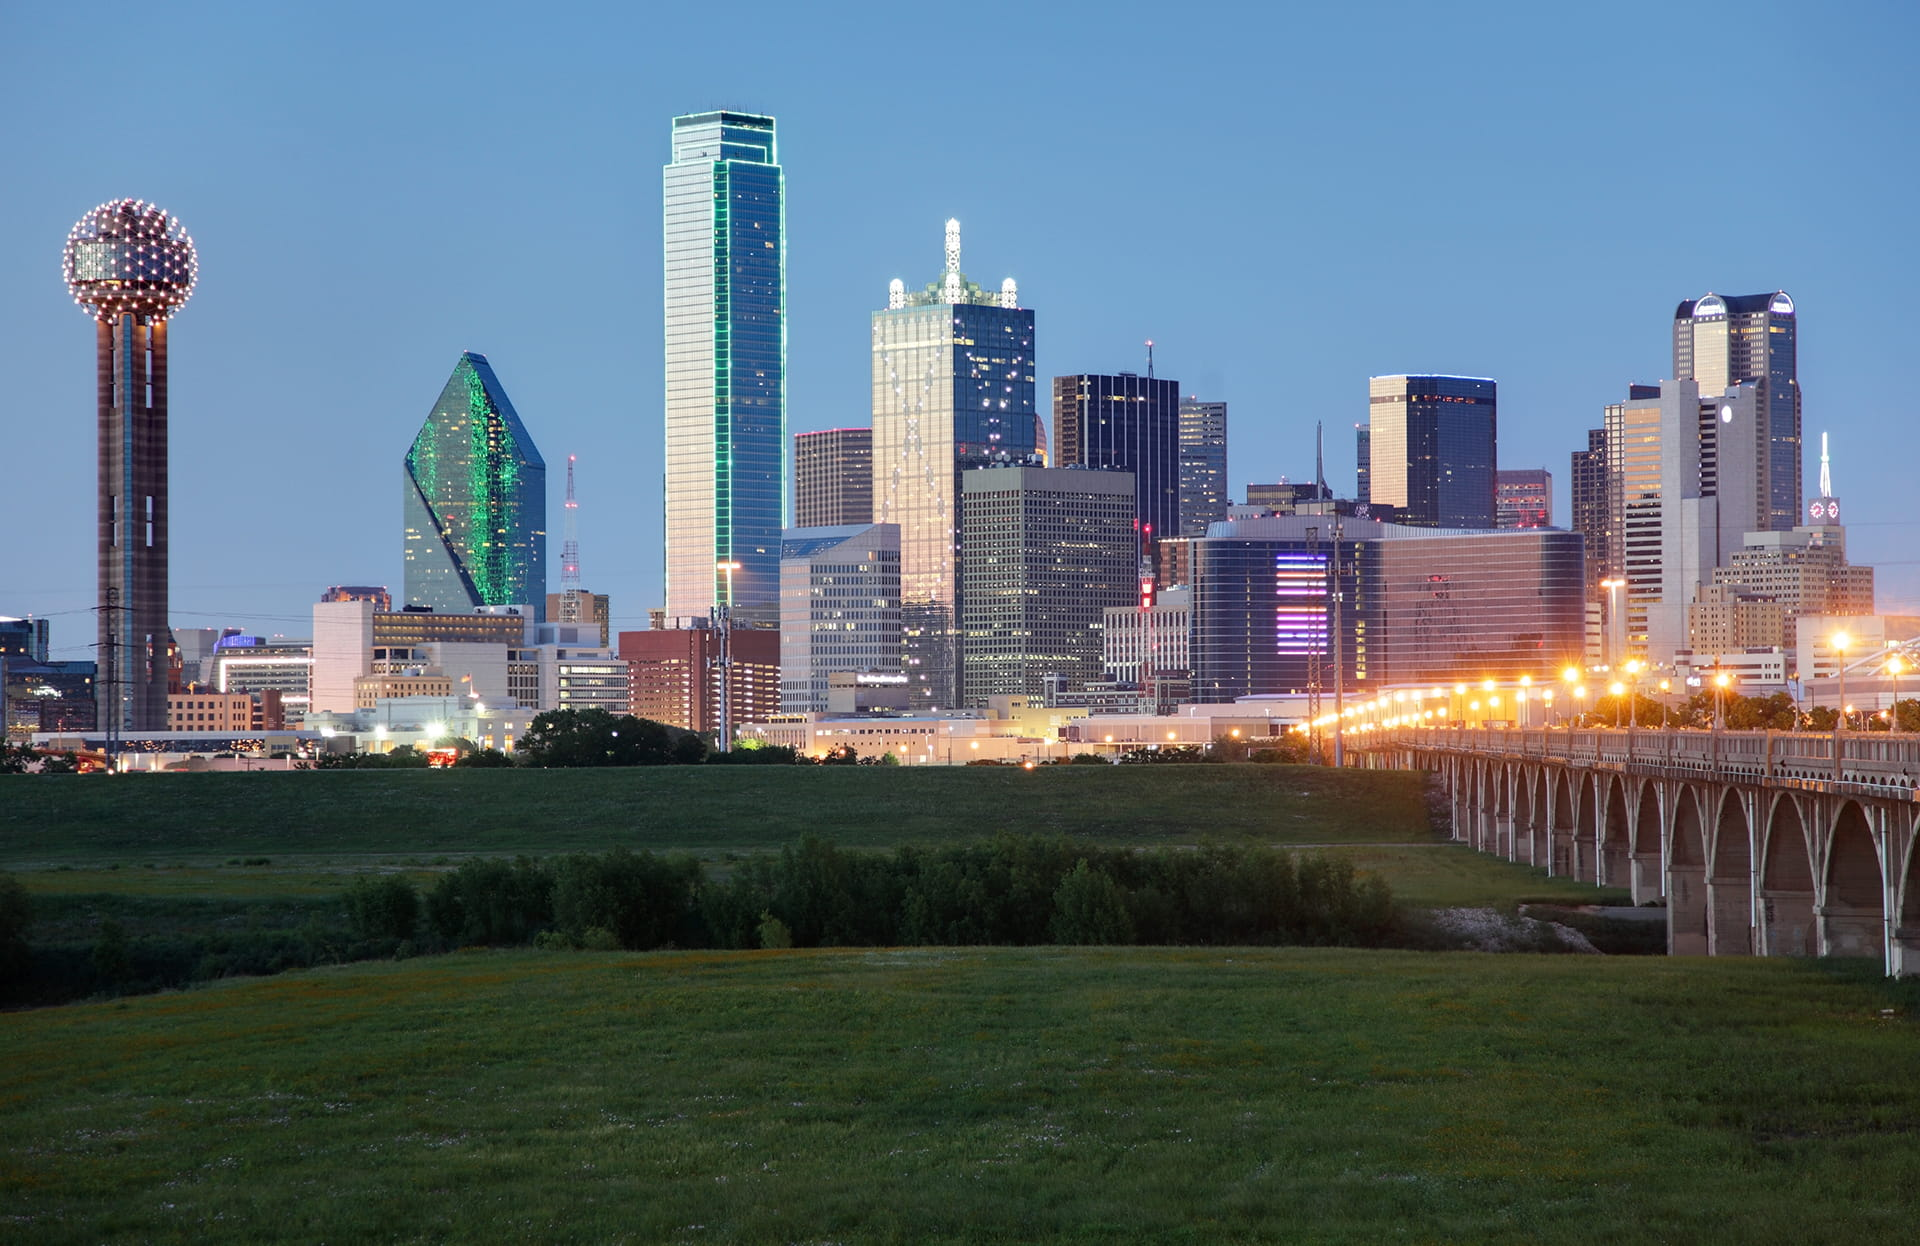 Dallas Park Skyline